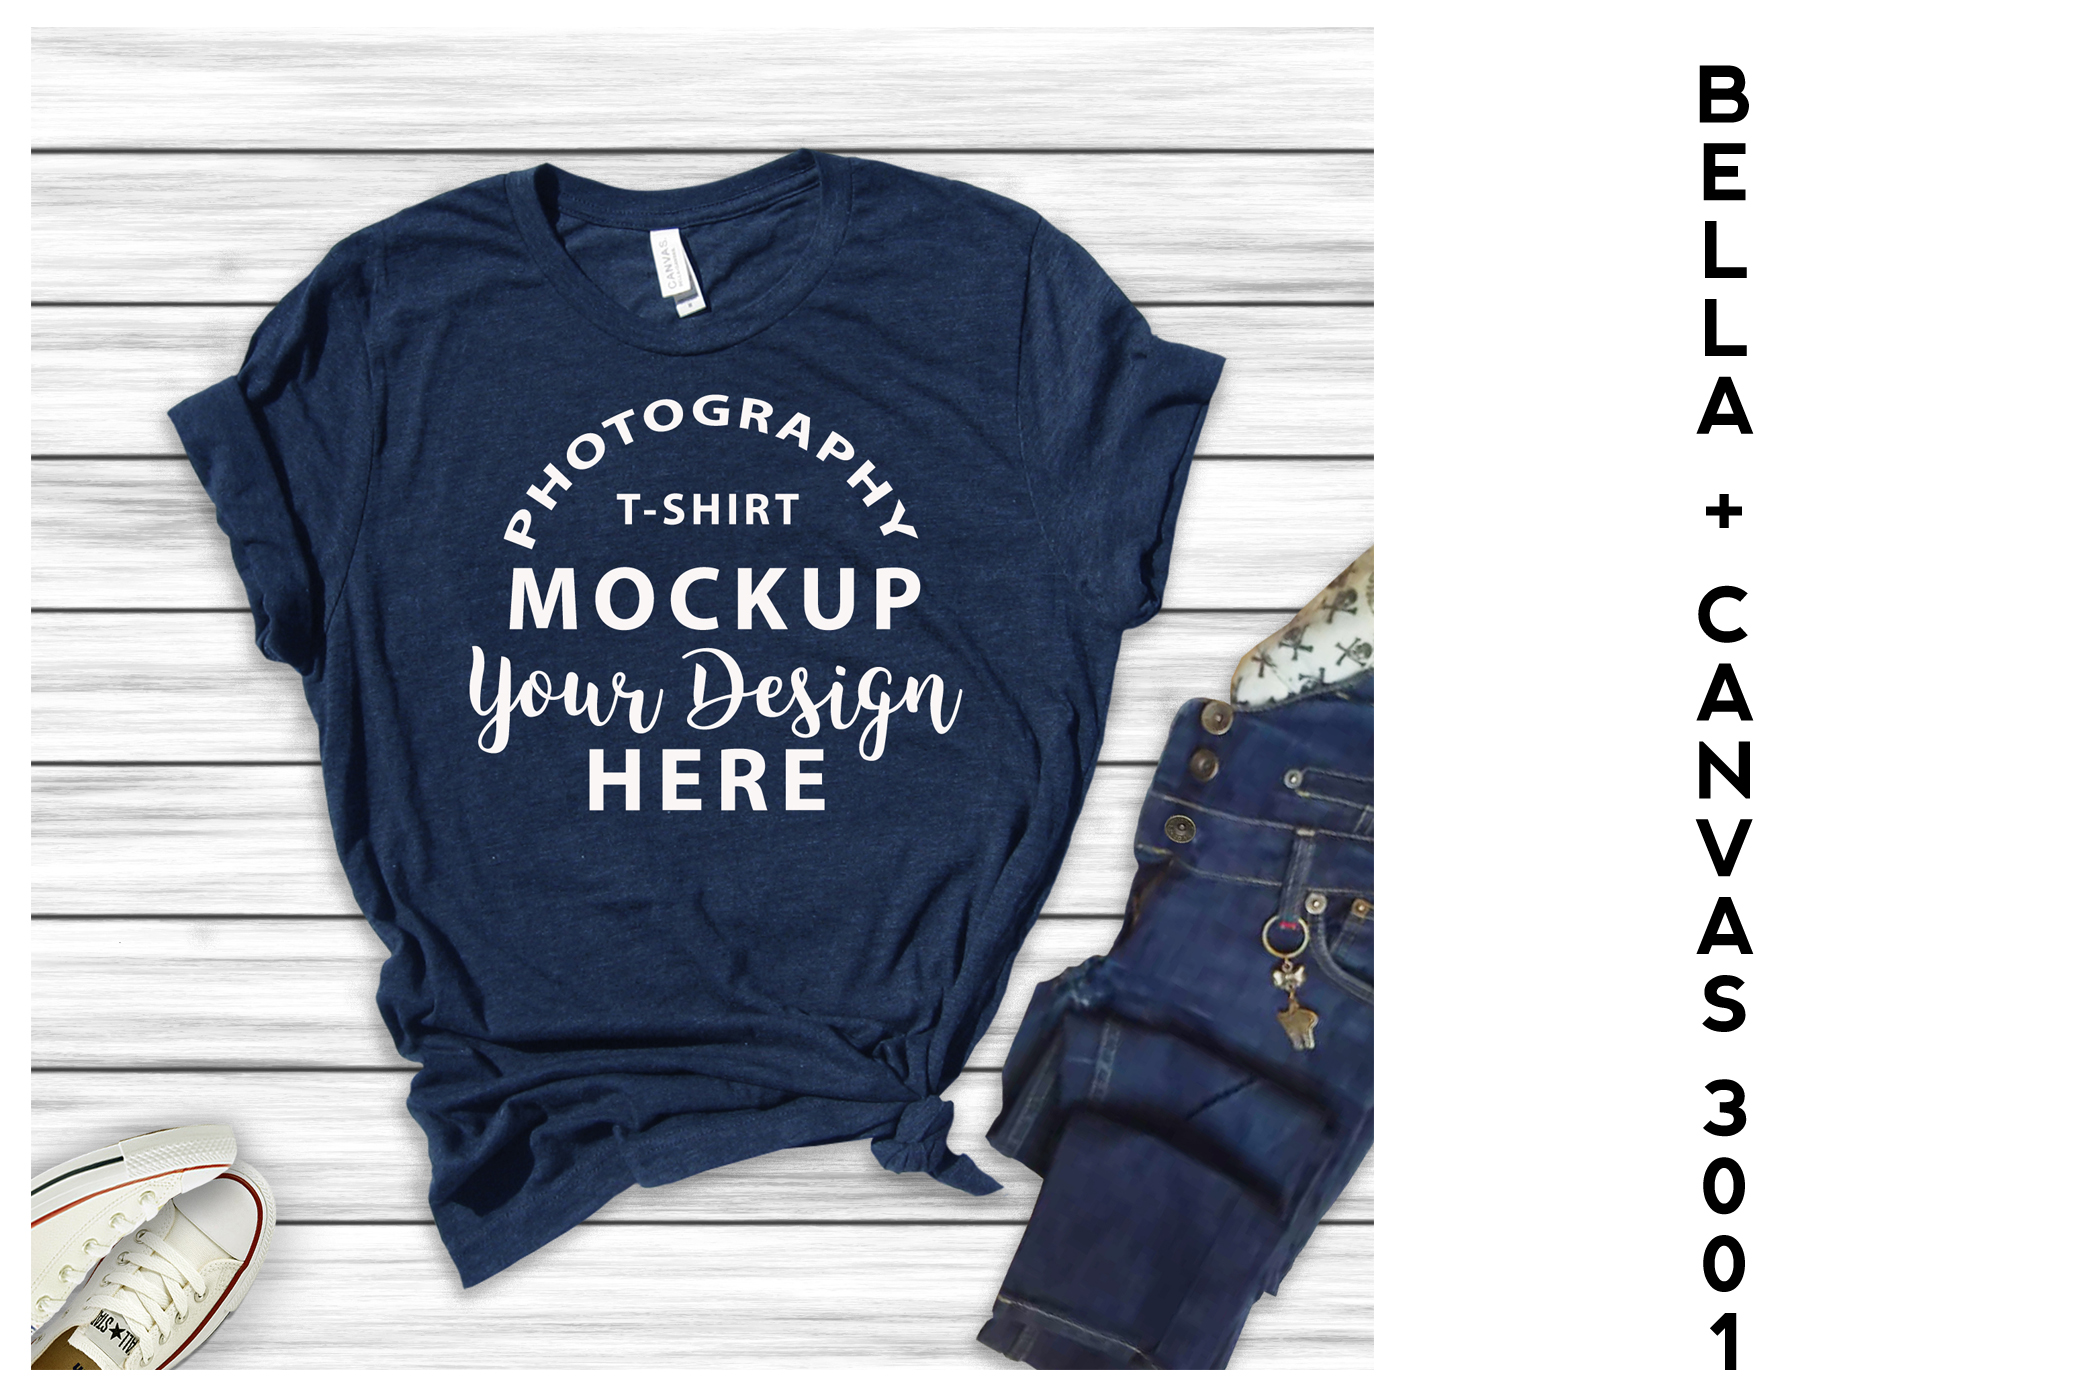 Bella Canvas 3001 All Heather T-shirts 16 mock-ups Bundle example image 1